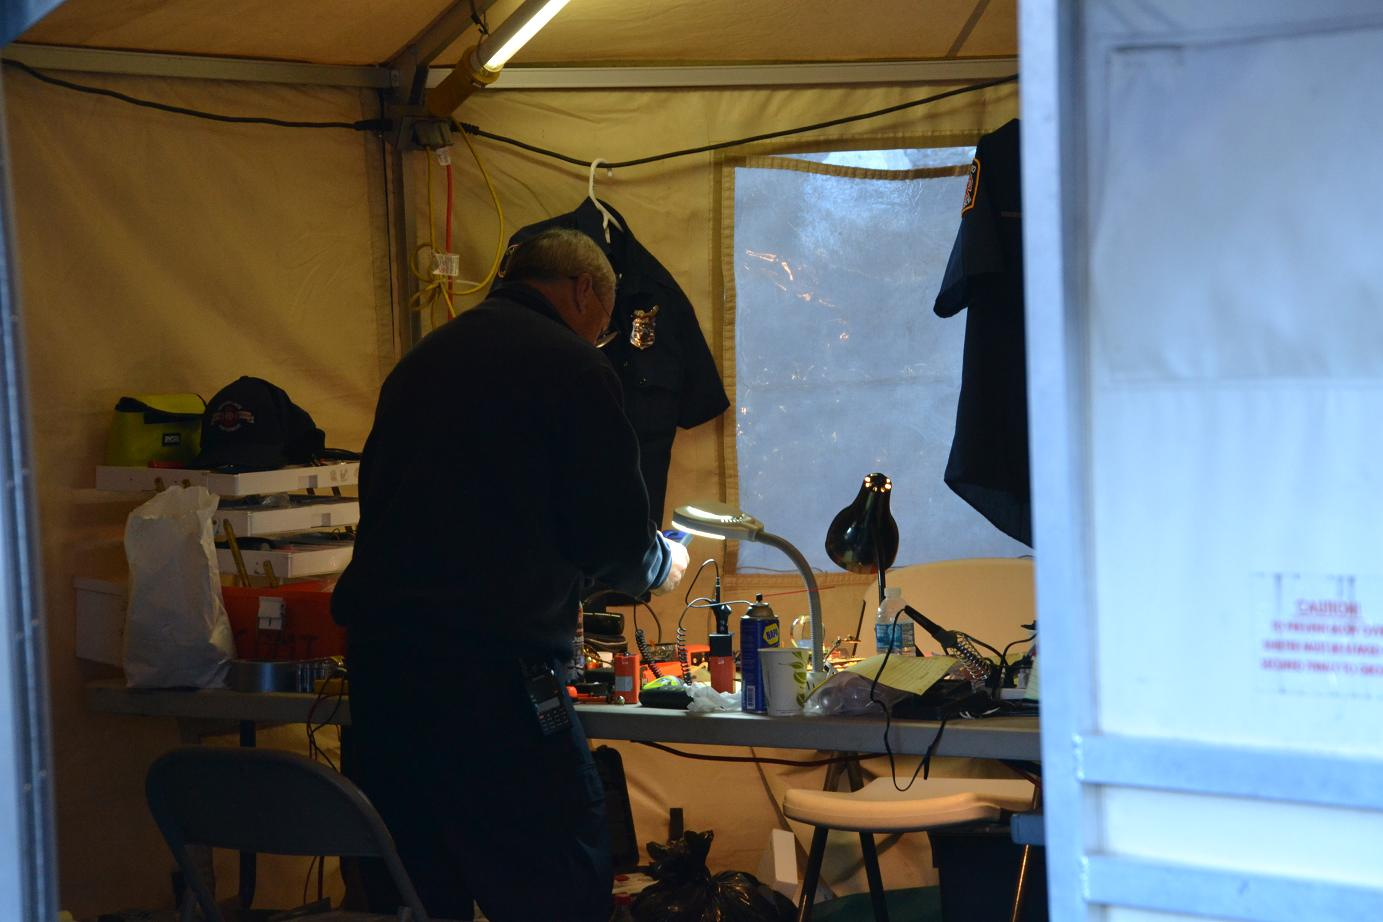 Radio Tech at fire camp - photo by Gina Clugston